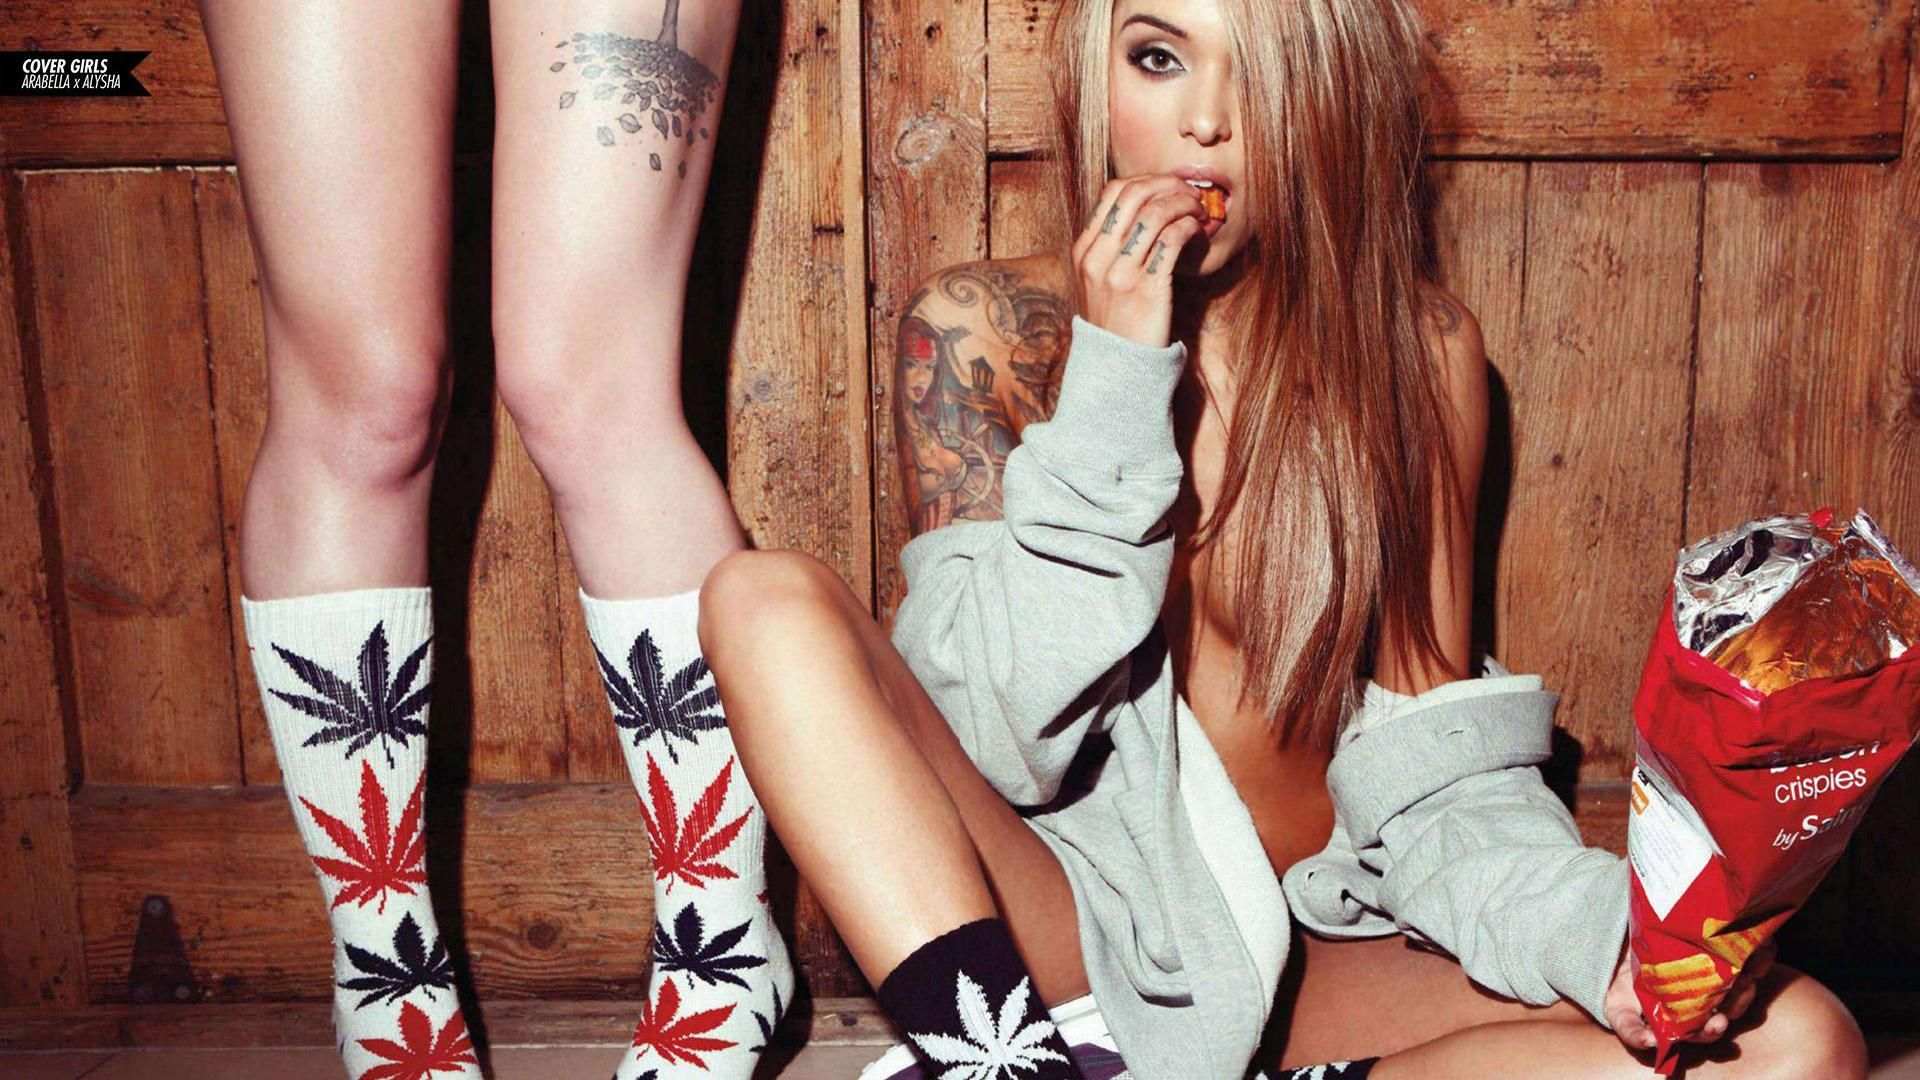 Weed and nude girls backgrounds